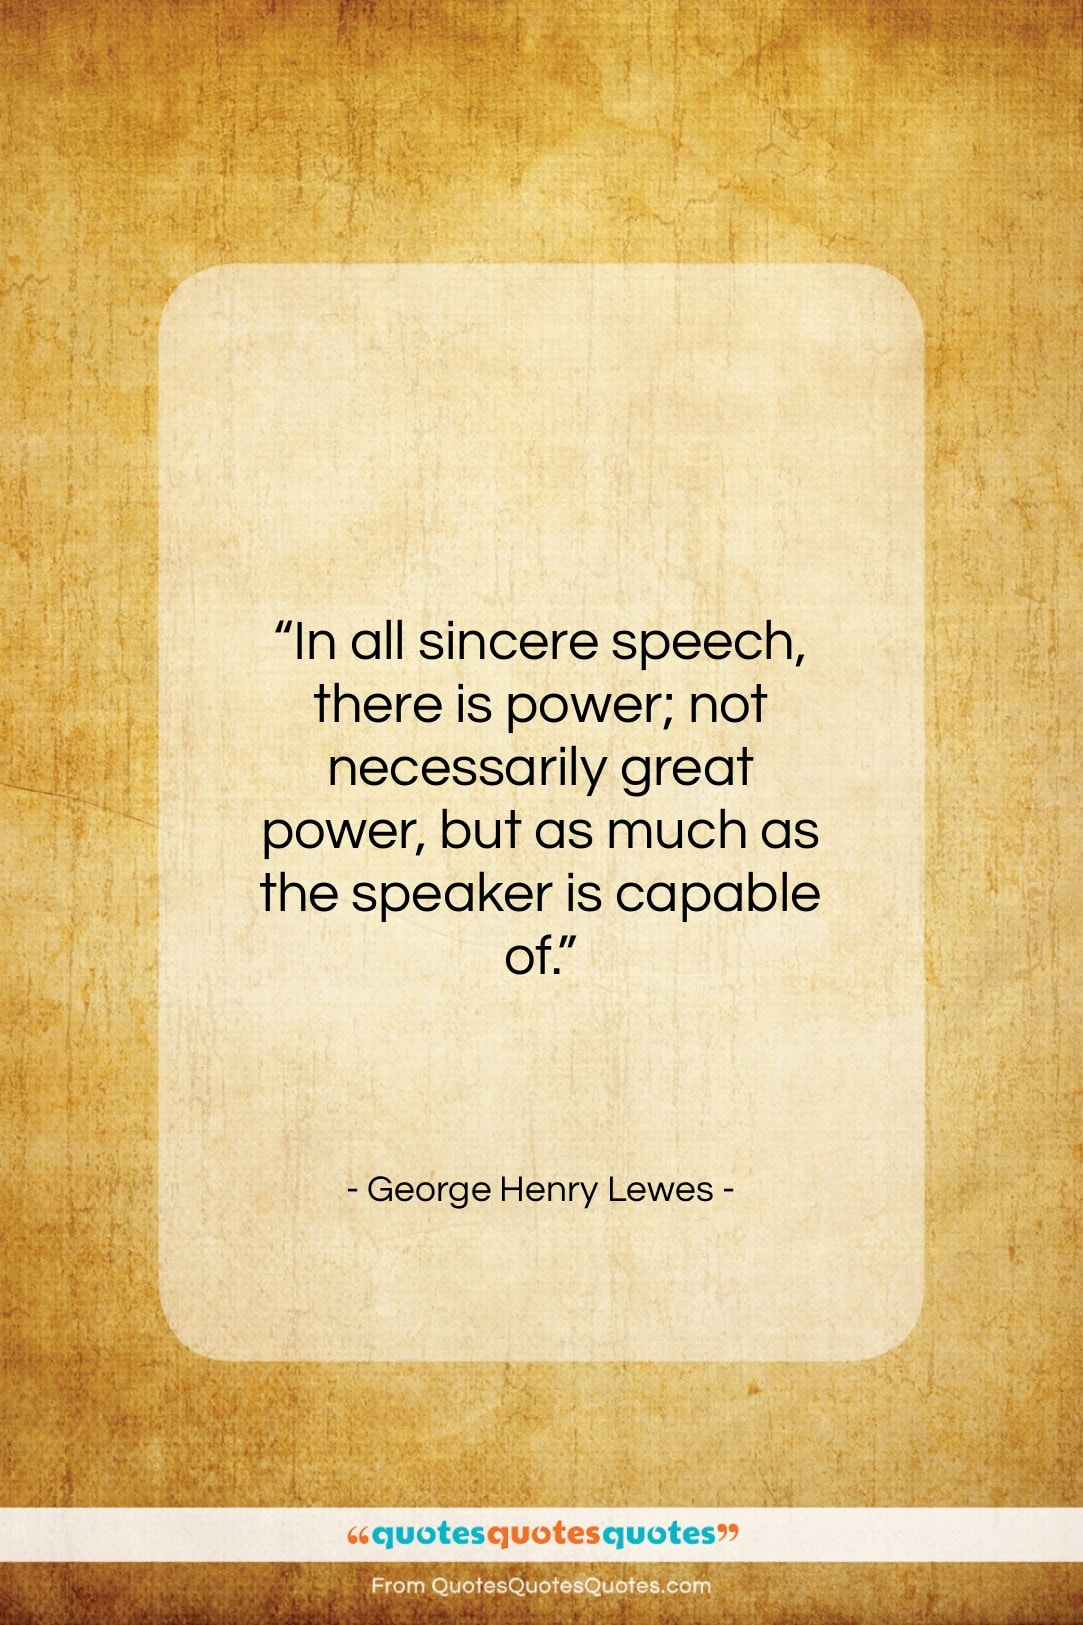 """George Henry Lewes quote: """"In all sincere speech, there is power;…""""- at QuotesQuotesQuotes.com"""